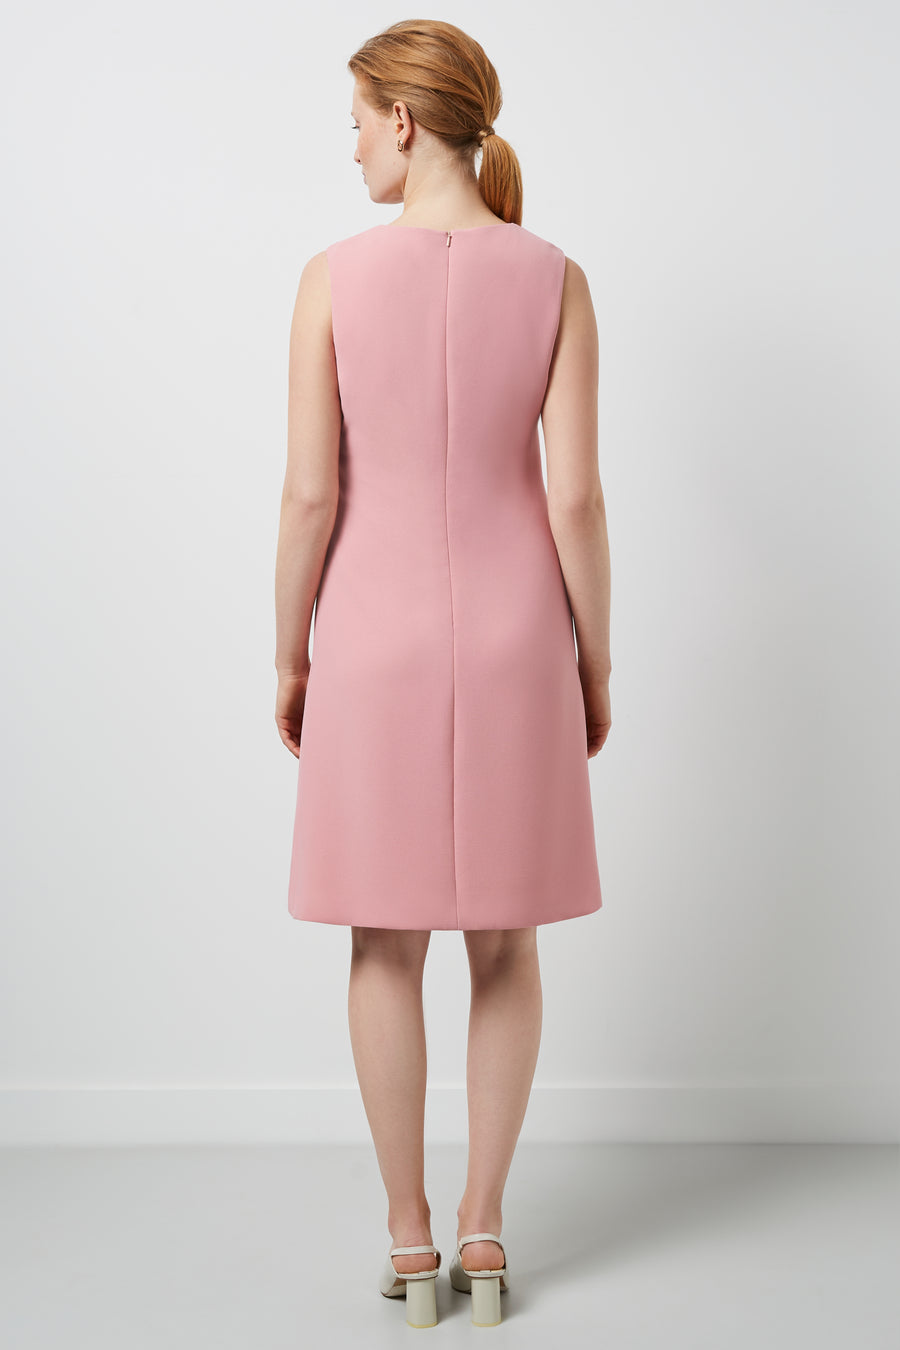 Margot Pink Dress